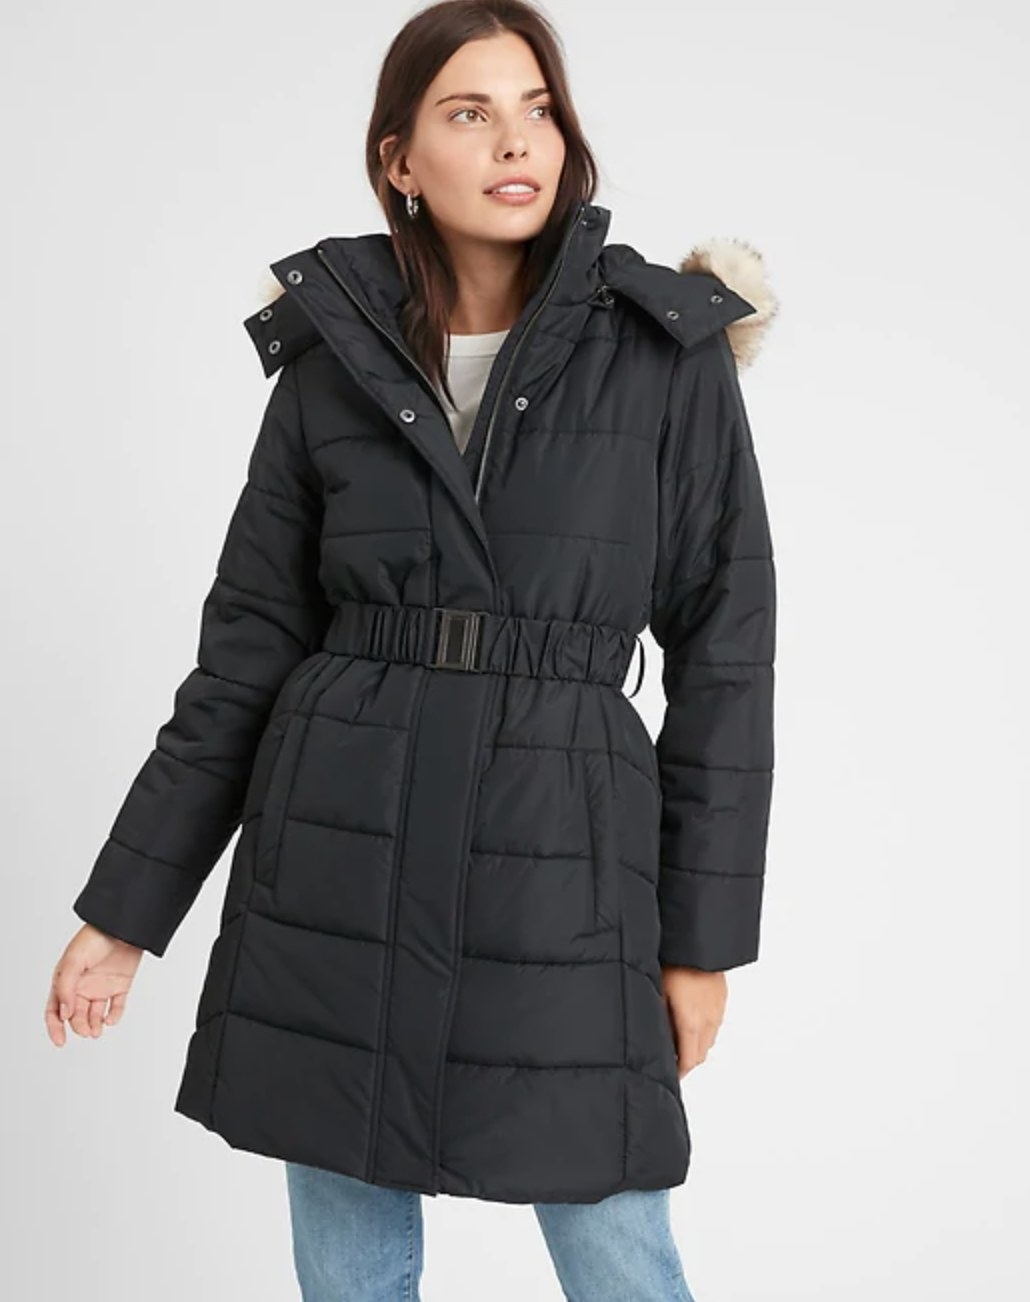 The hooded and belted puffer jacket in black